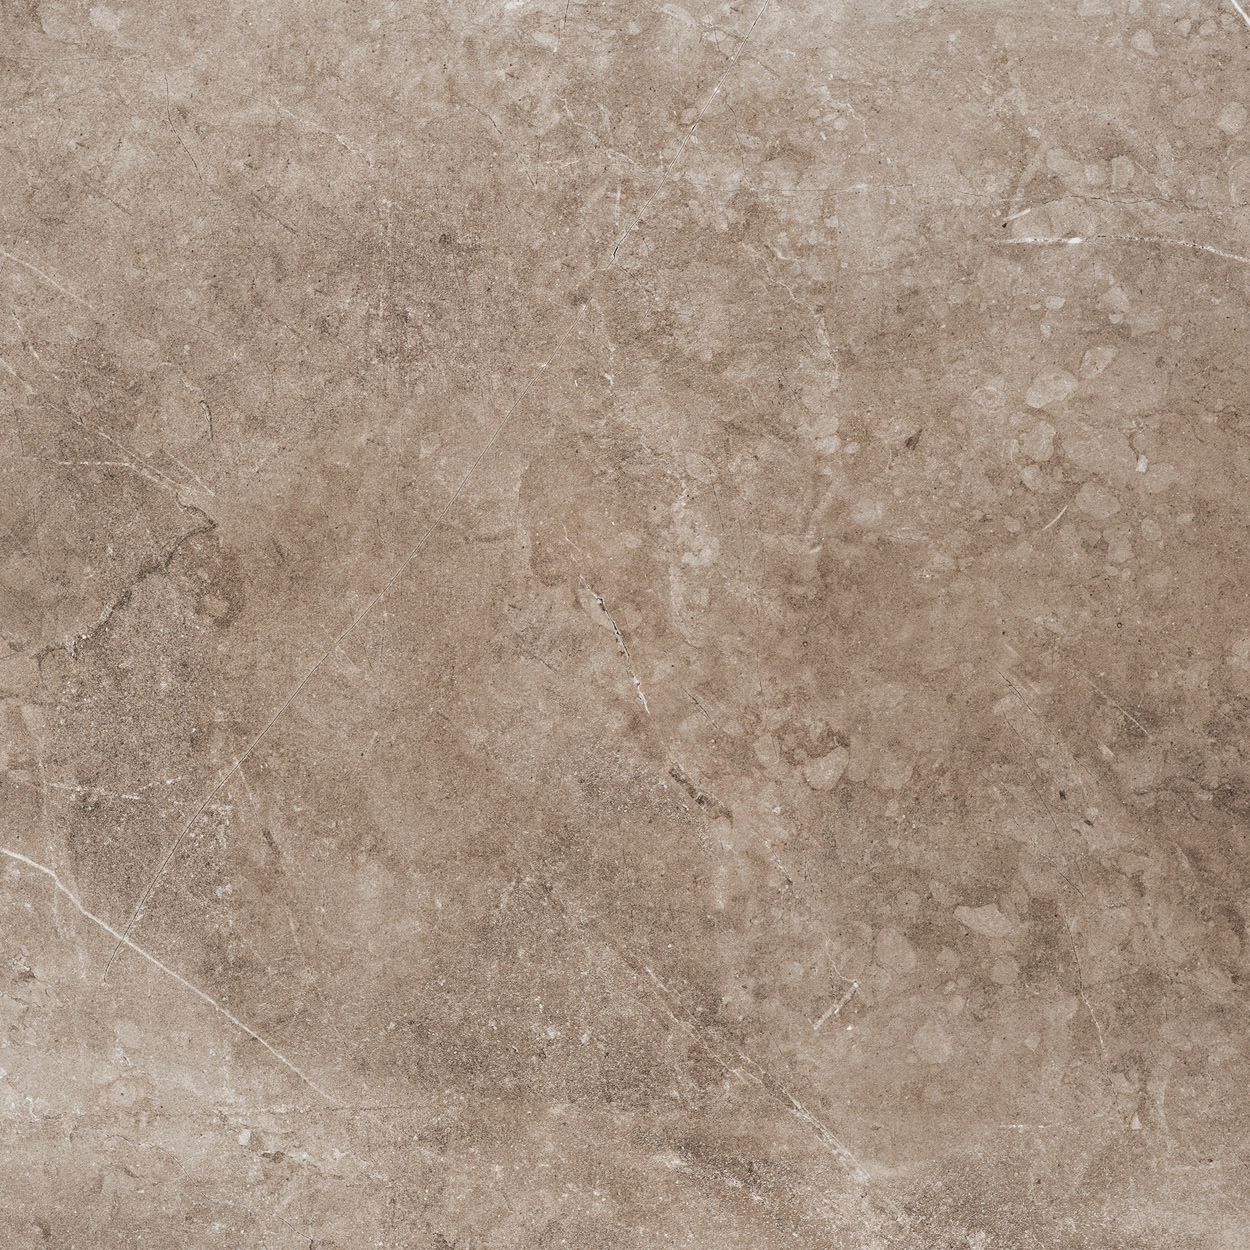 3 X 12 Evo Stone Dune Honed finished Rectified Porcelain Tile